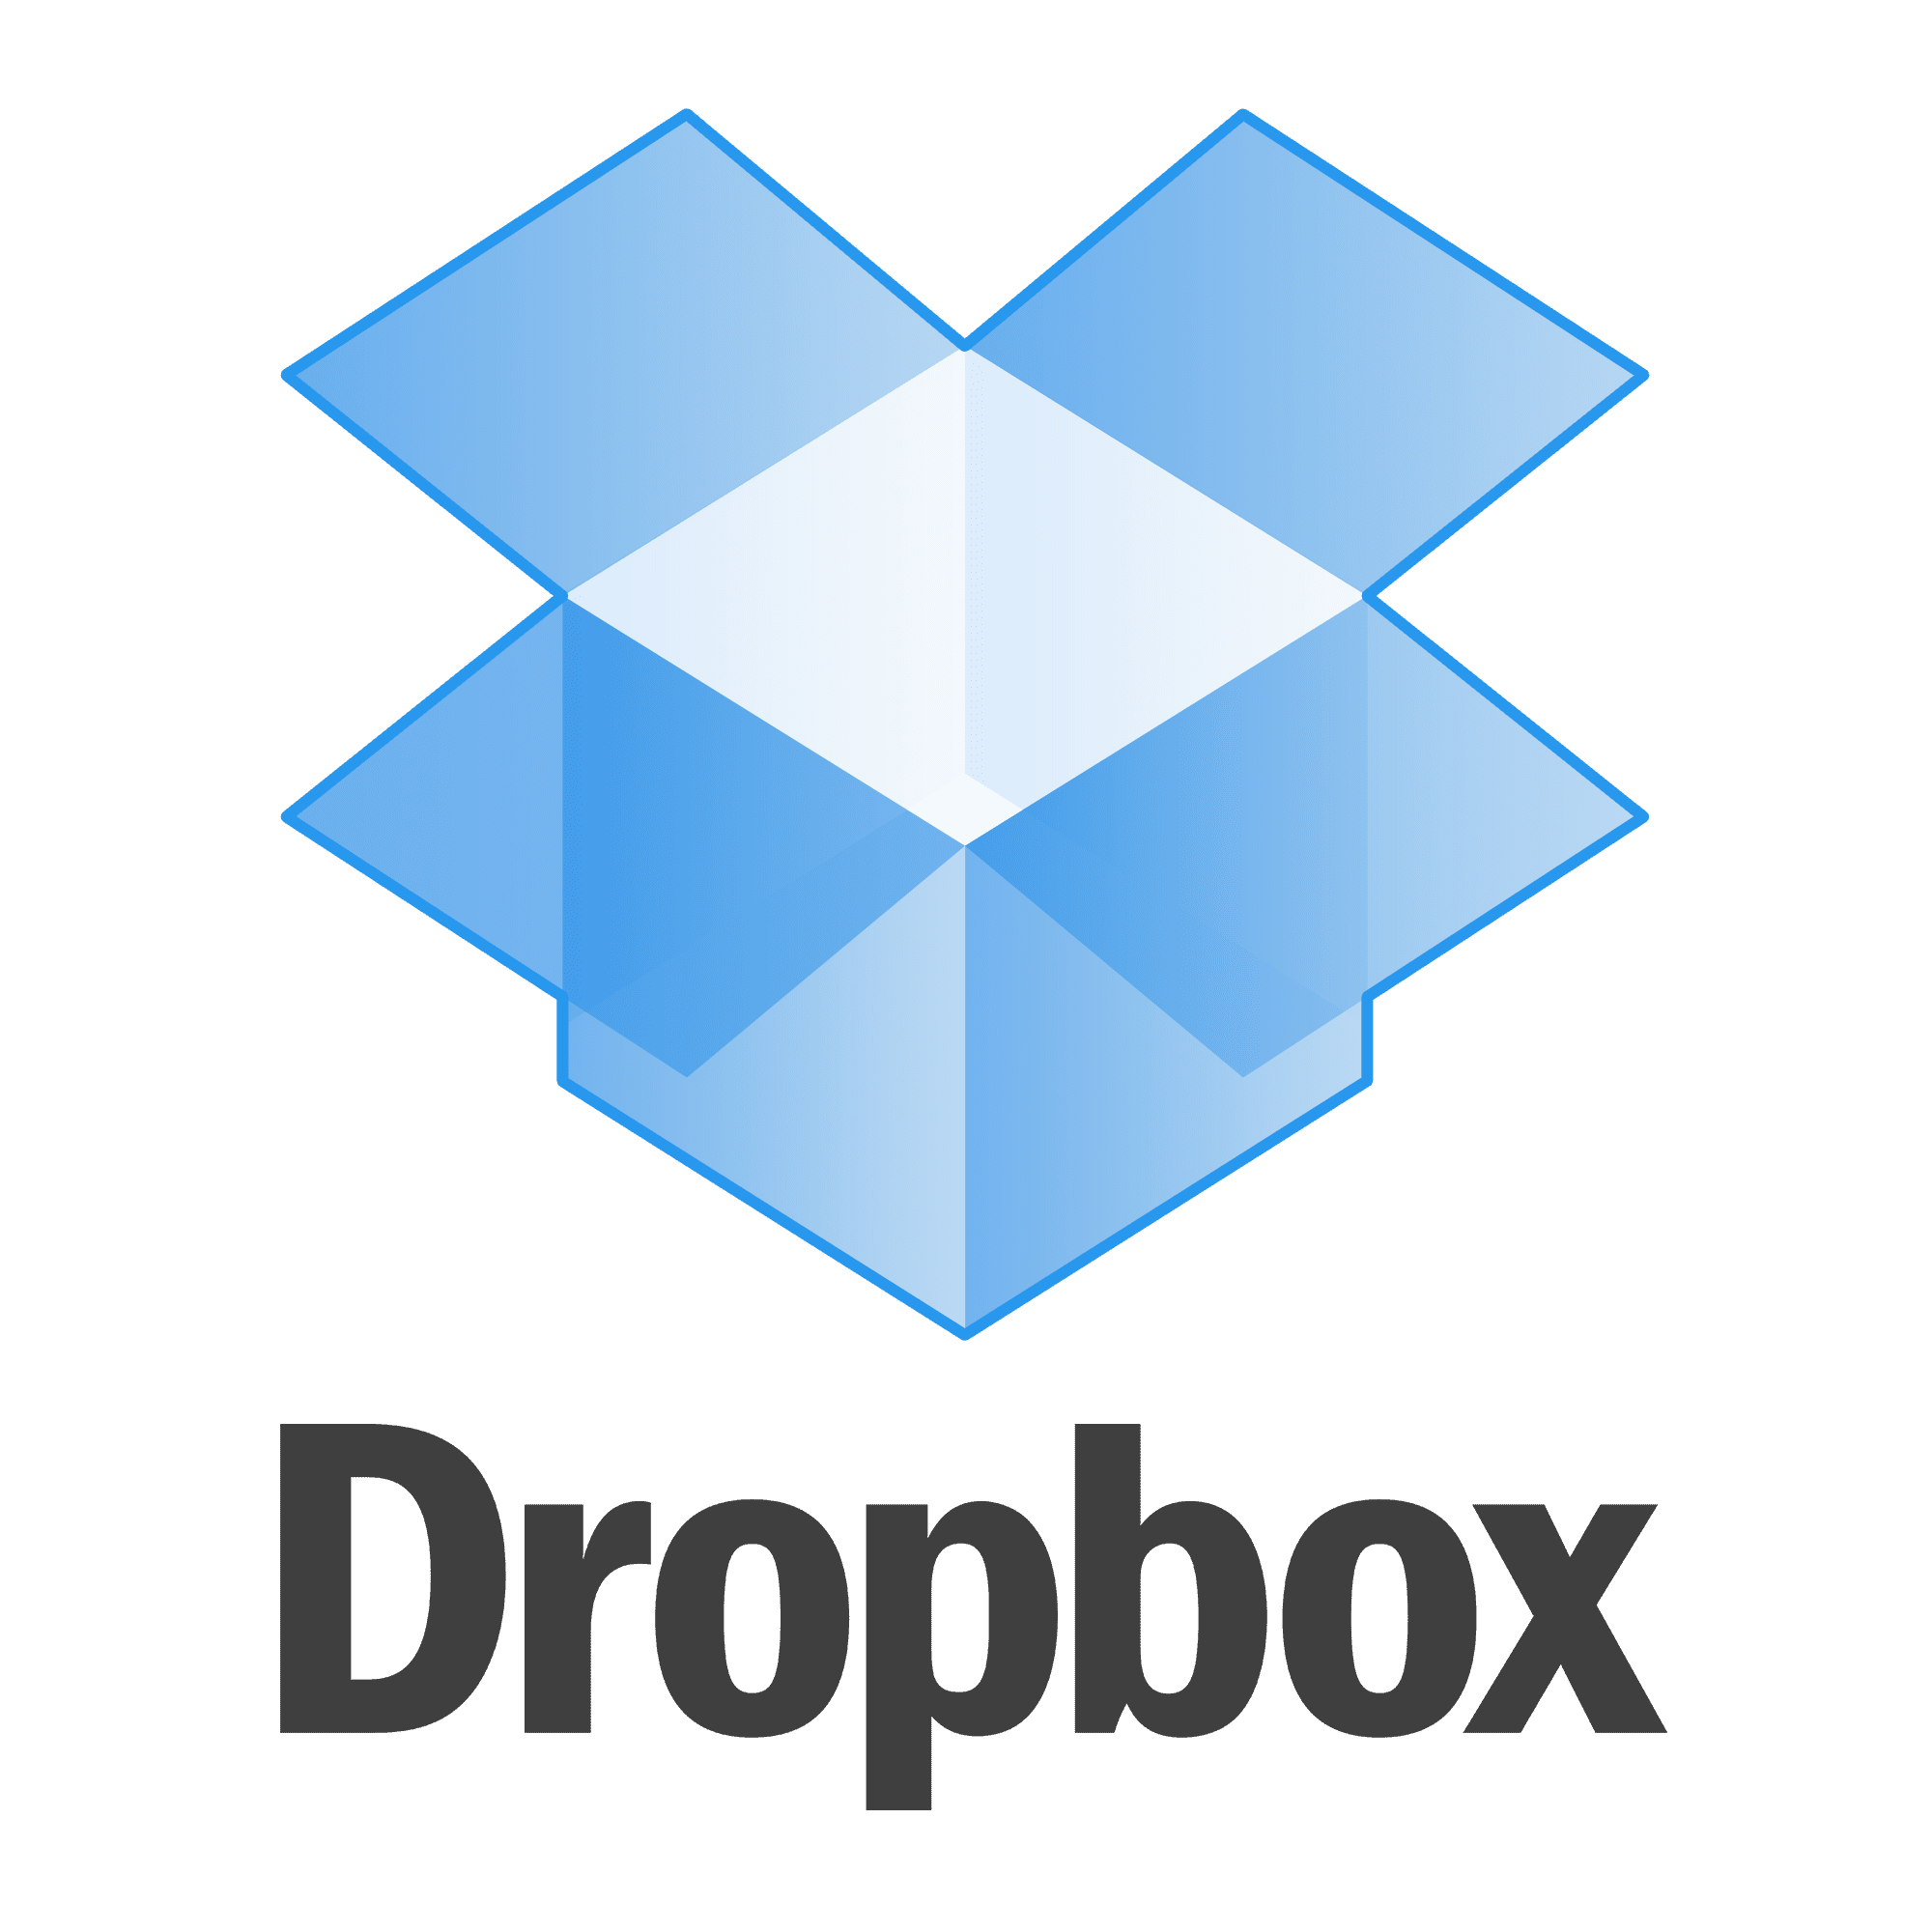 Download multiple dropbox accounts on pc, windows xp/7/8.